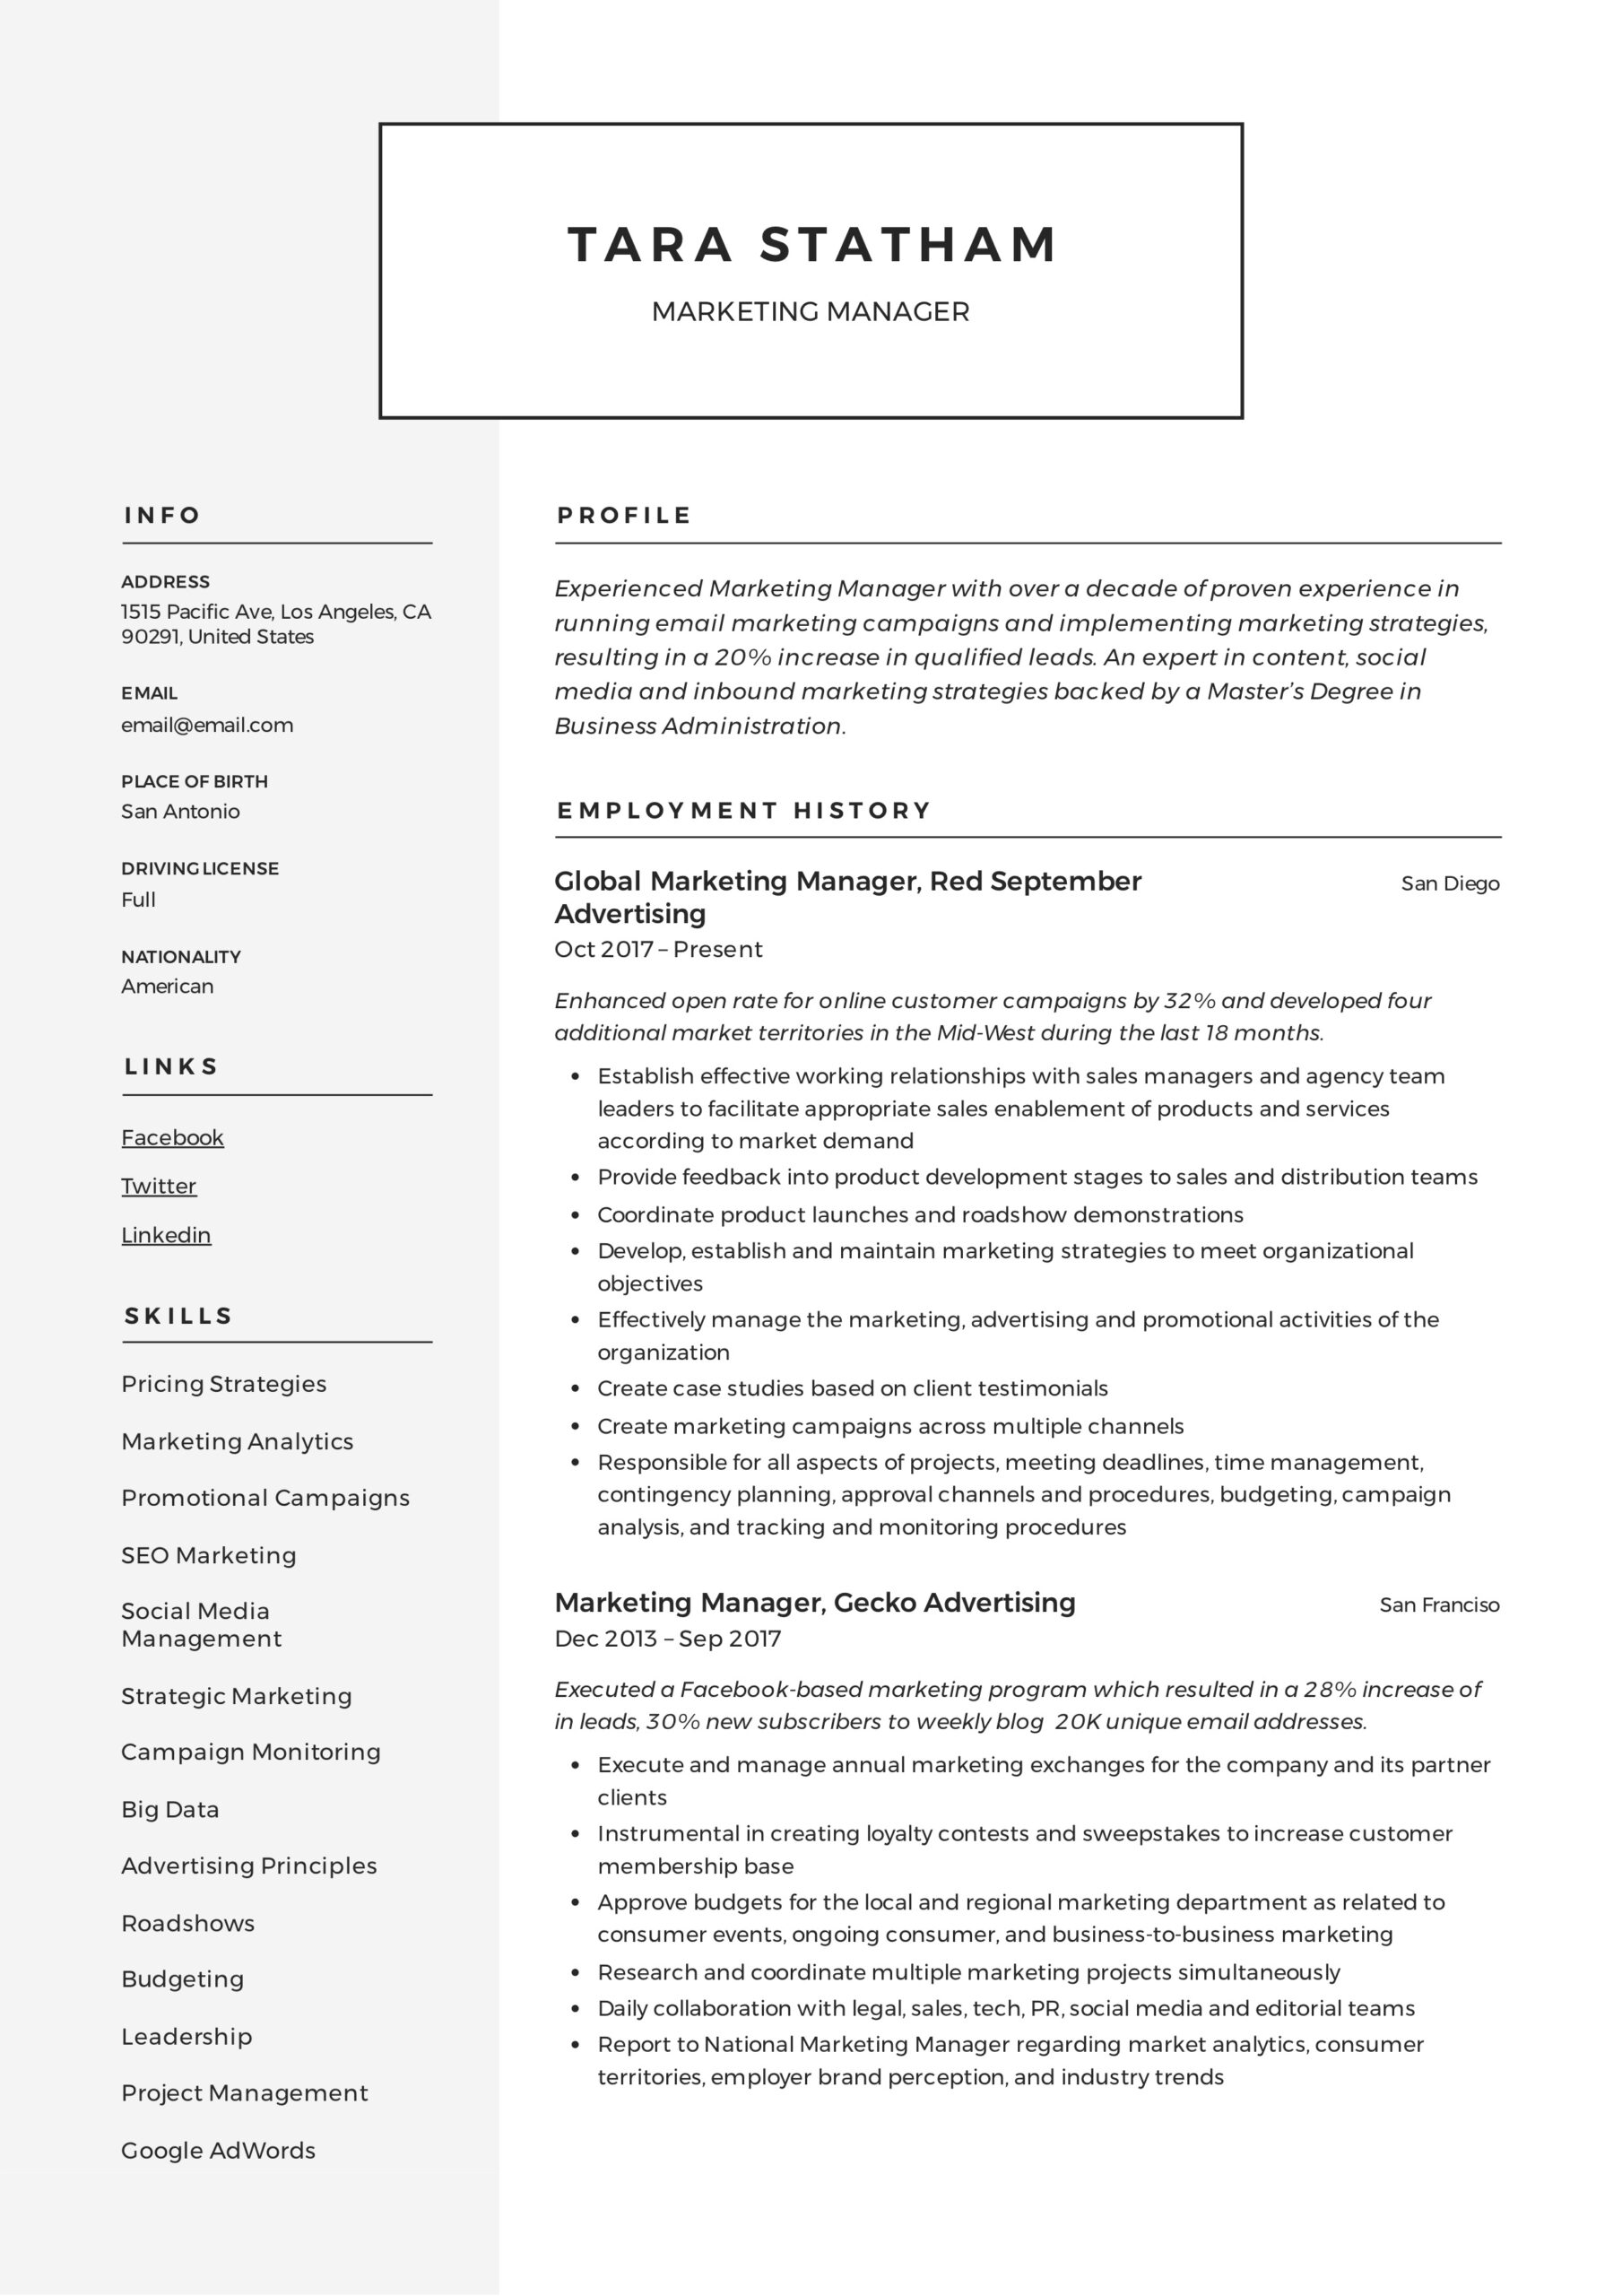 marketing manager resume writing guide templates campaign tara statham assistant project Resume Campaign Manager Resume